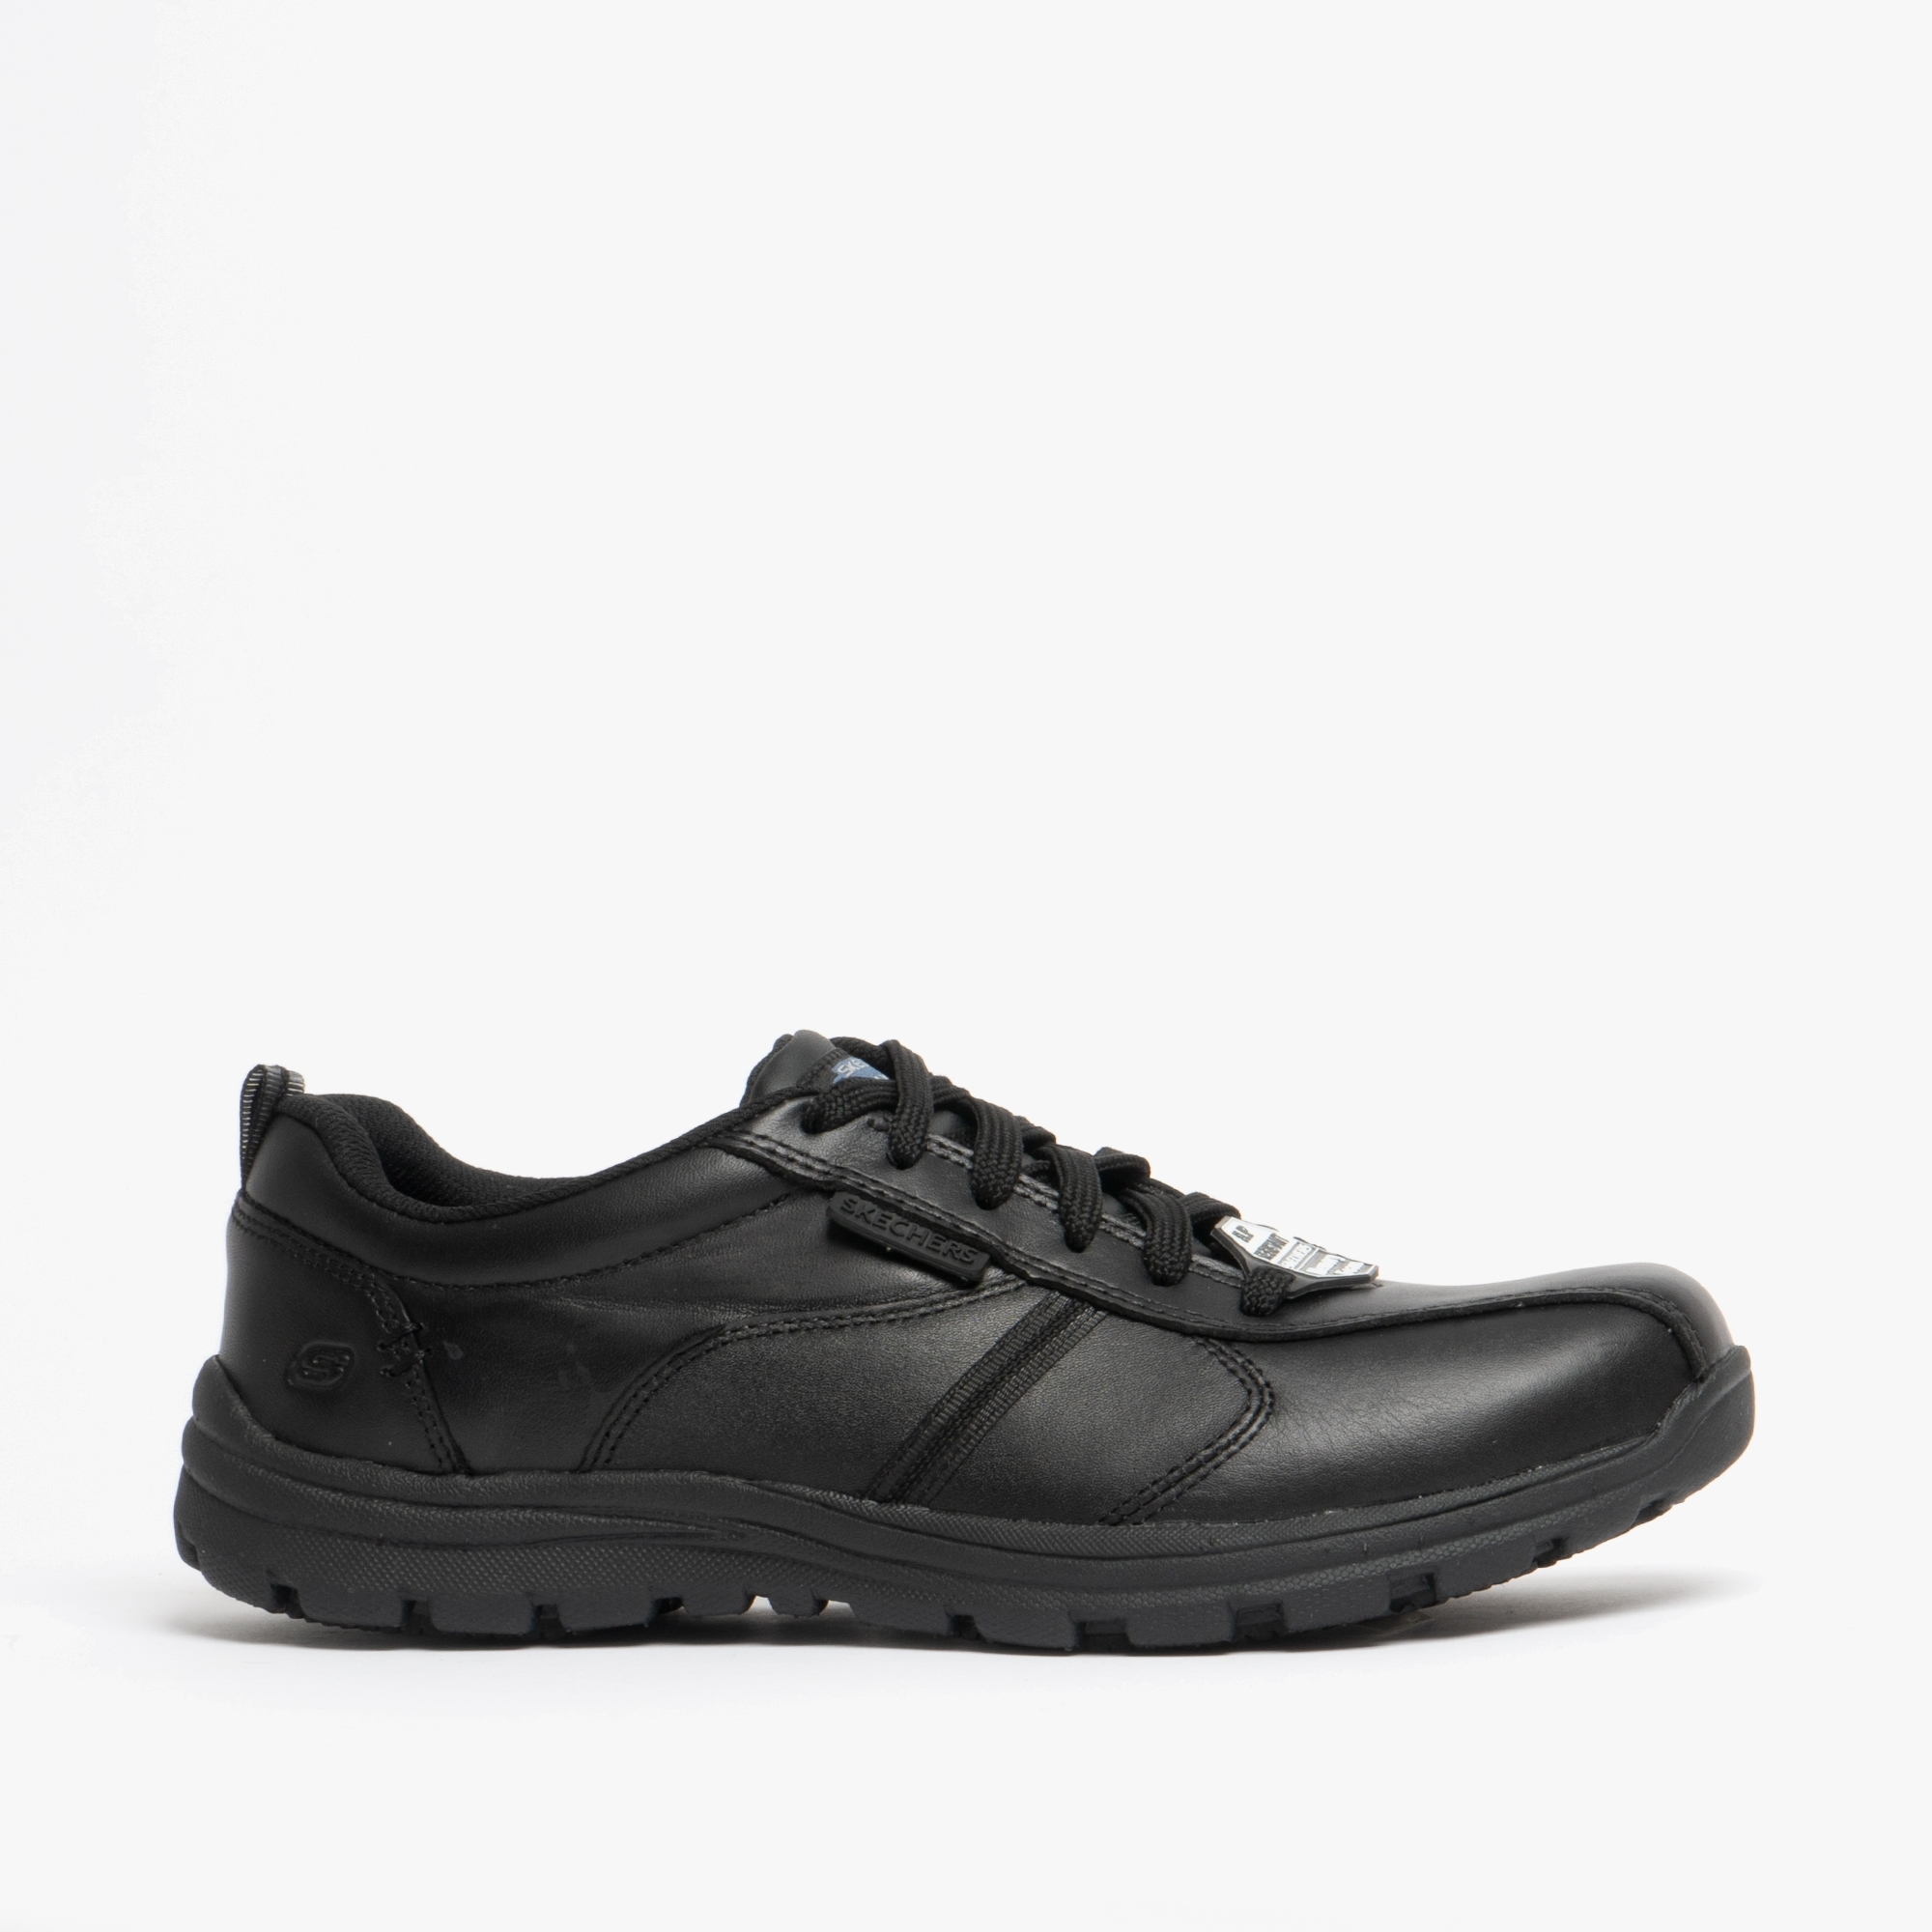 Skechers WORK: RELAXED FIT HOBBES Mens